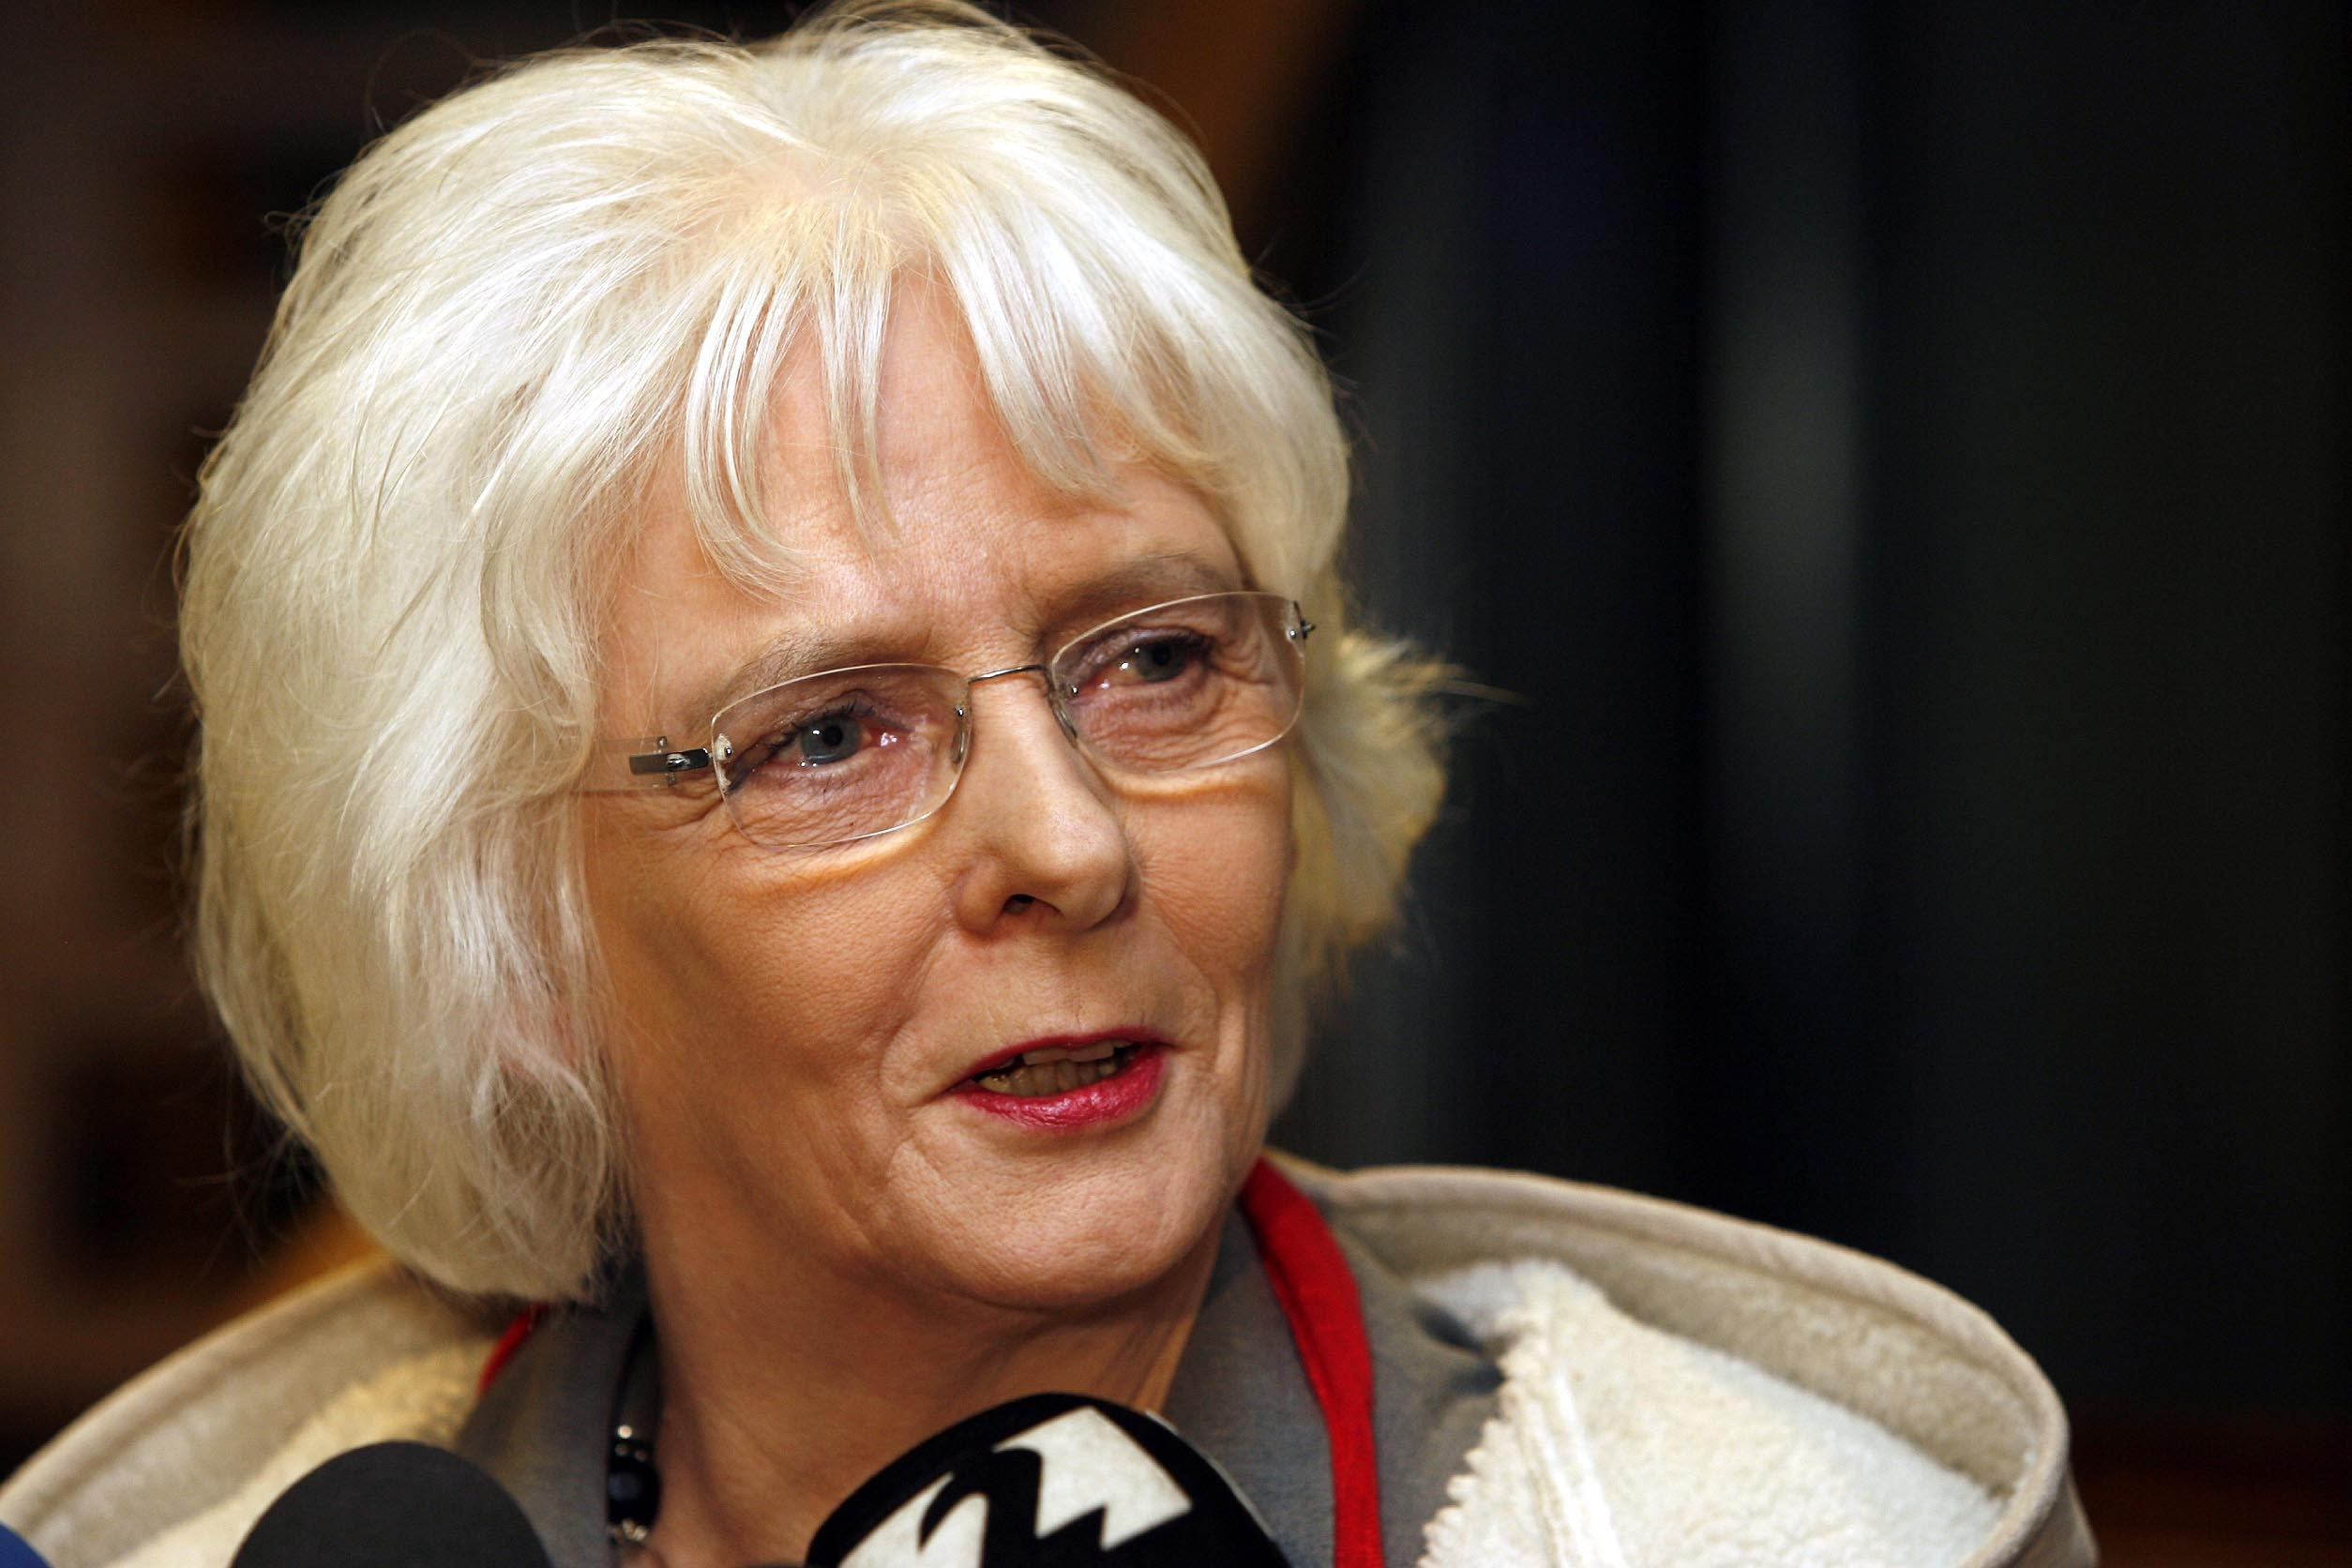 Iceland's Social Affairs Minister Johanna Sigurdardottir speaks to the media following party negotiations in Reykjavik, Iceland, Wednesday Jan. 28, 2009. Sigurdardottir, 66, an openly gay former flight attendant, is expected to become Iceland's interim pr